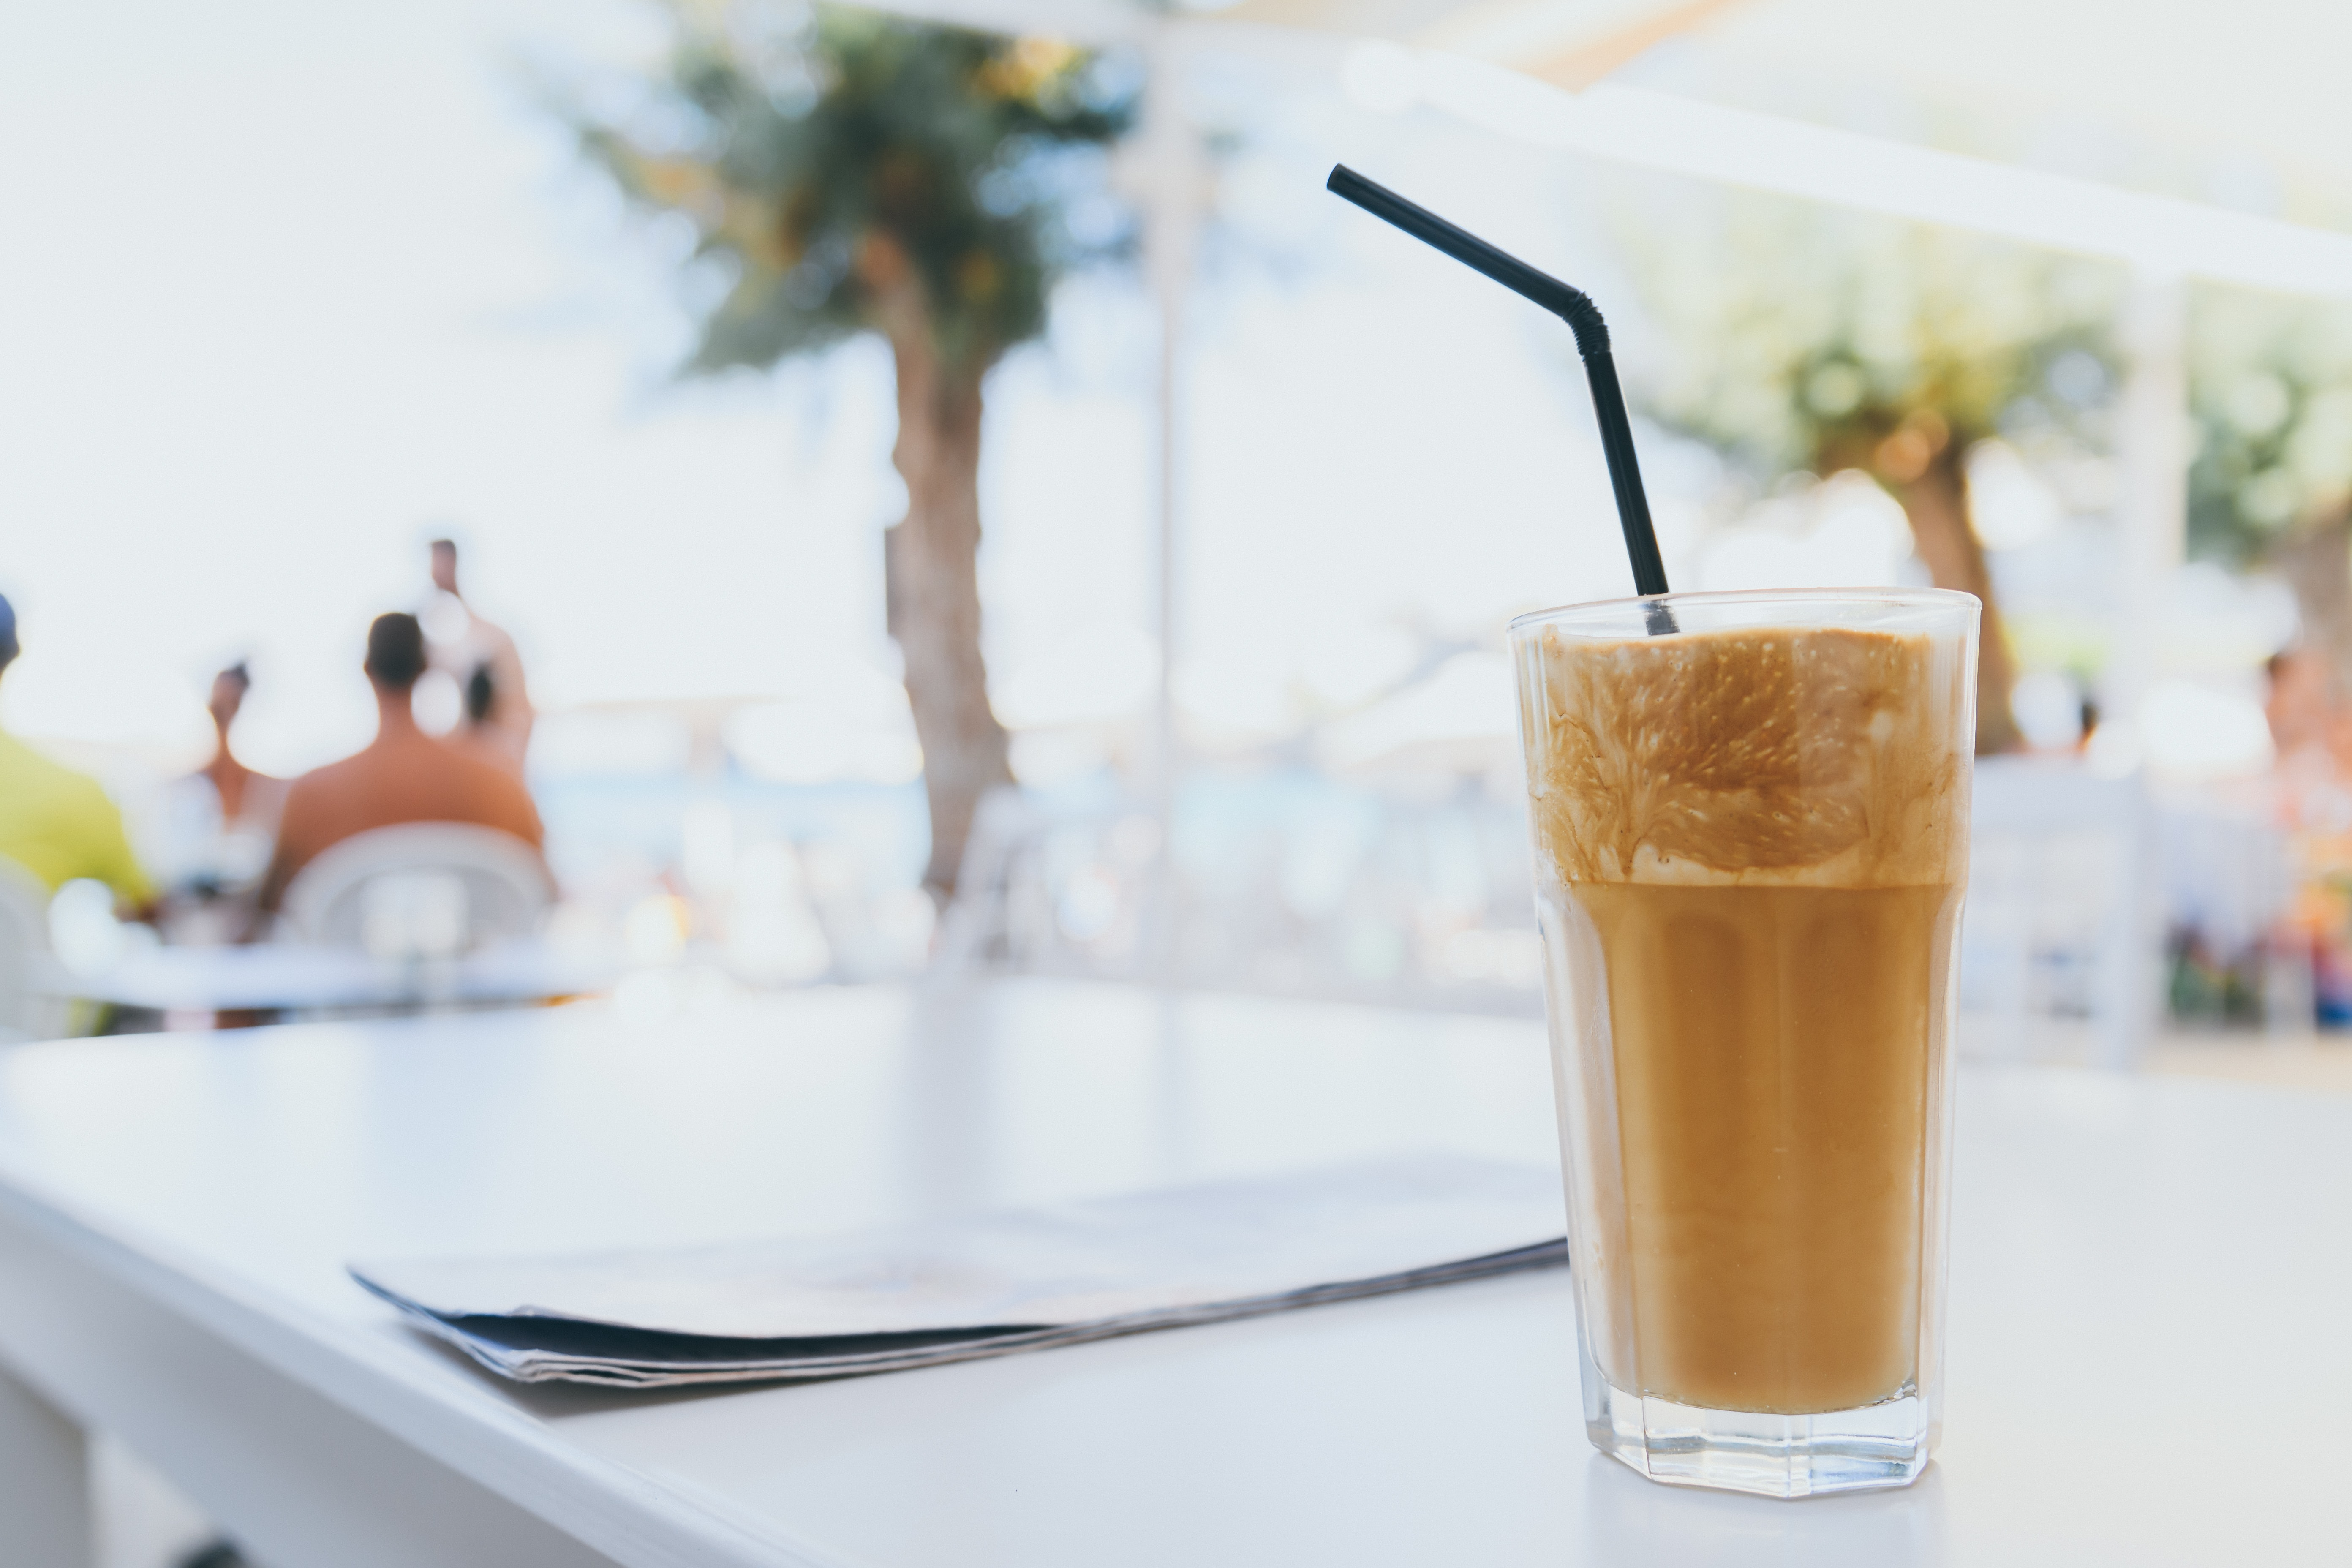 filled drinking glass with black straw